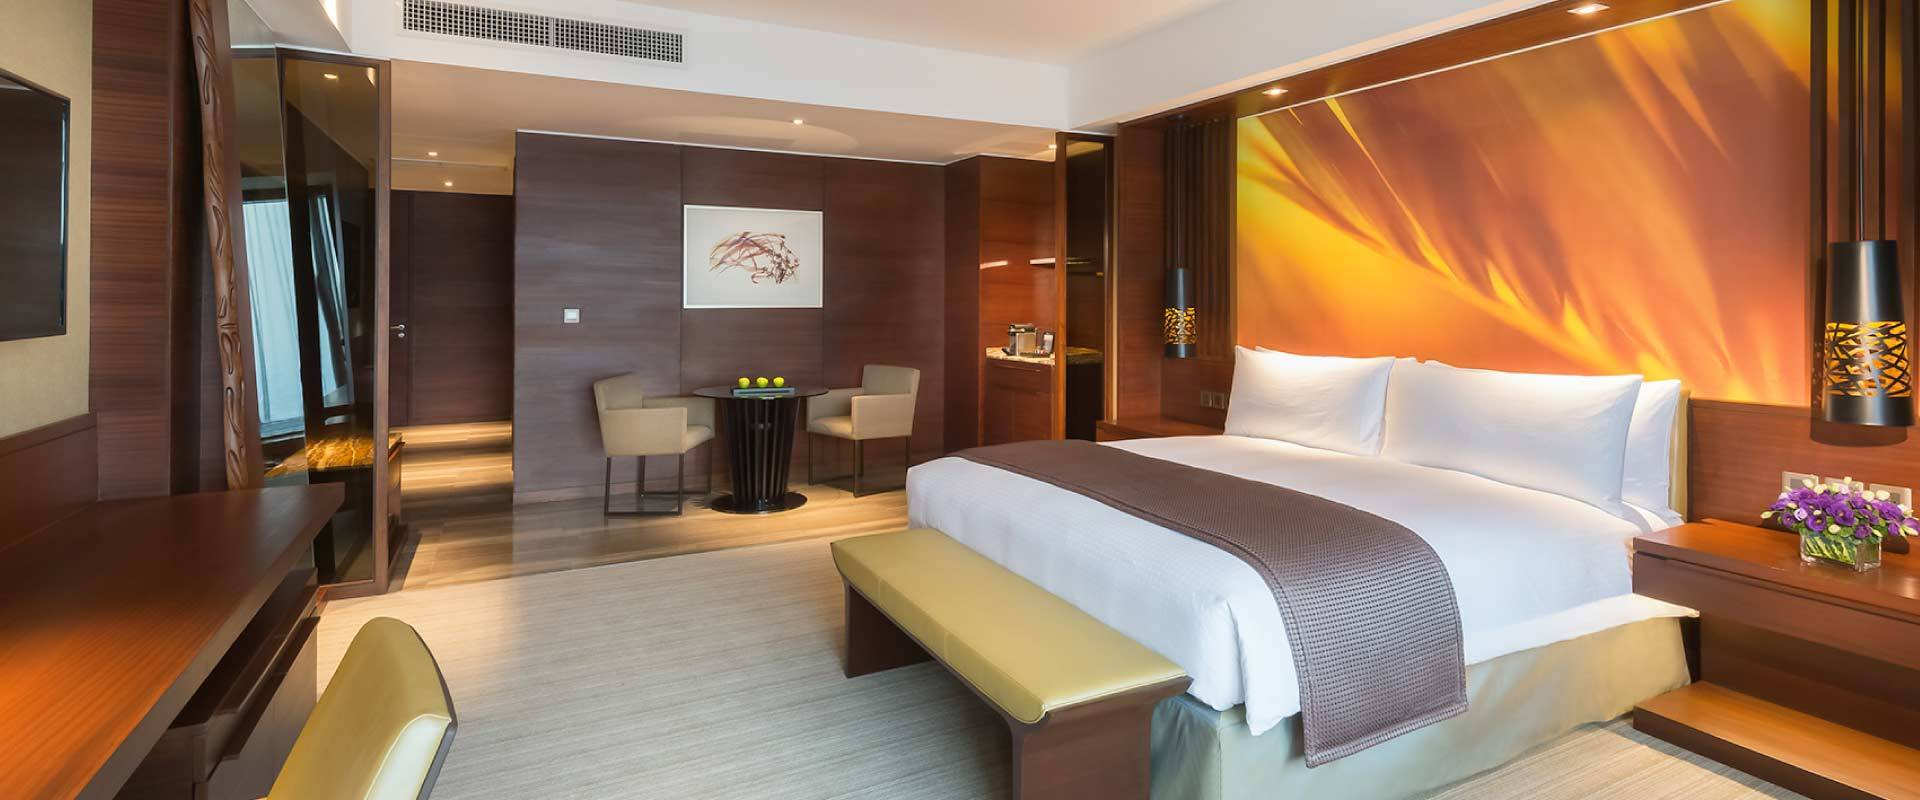 Guest Bedrooms Ideas Rooms Amp Suites Marco Polo Ortigas Manila